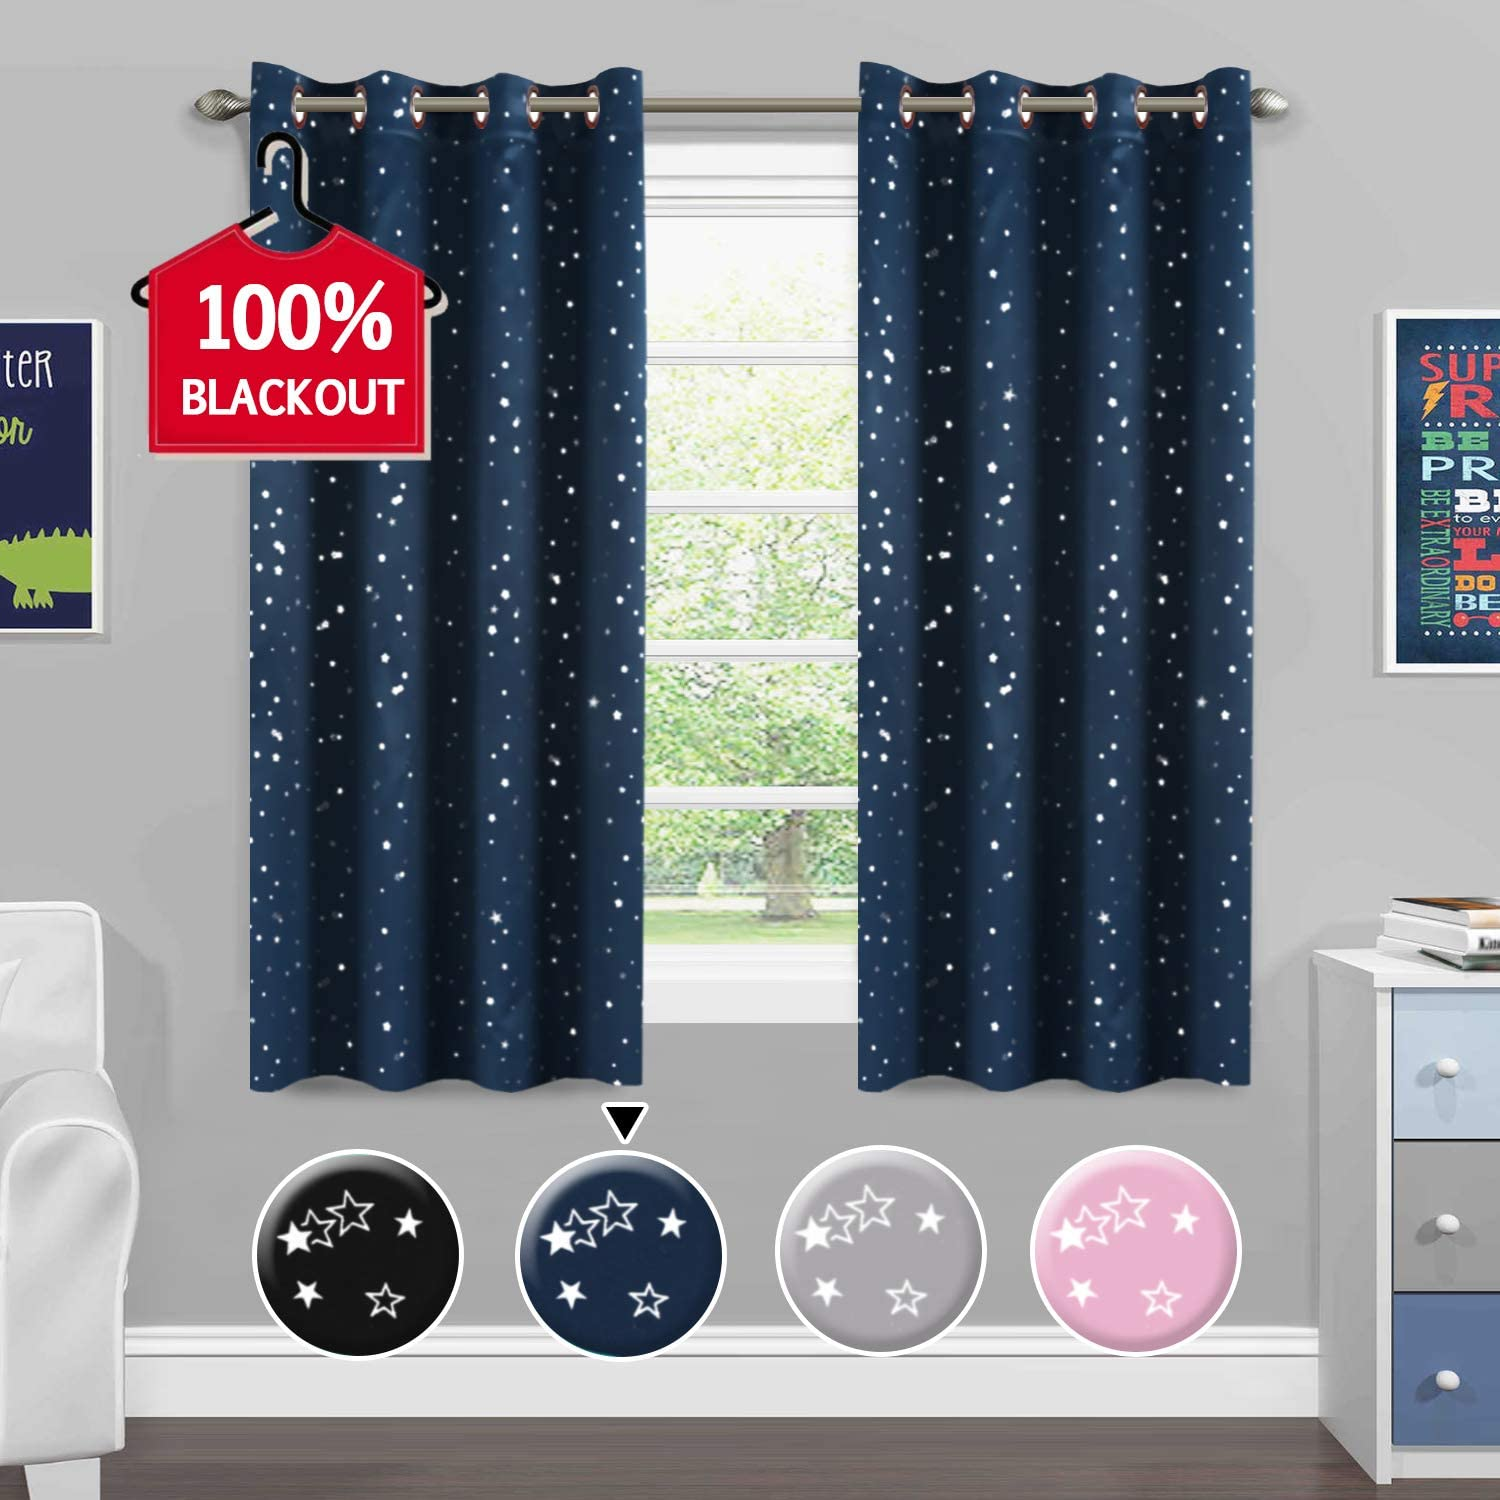 H.VERSAILTEX Blackout Curtains Kids Room Thermal Insulated Twinkle Stars Printed Curtain Draperies for Boys Girls, Sleep-Enhancing Magic Grommet Drapes, 2 Panels, Each 52x63-Inch, Navy